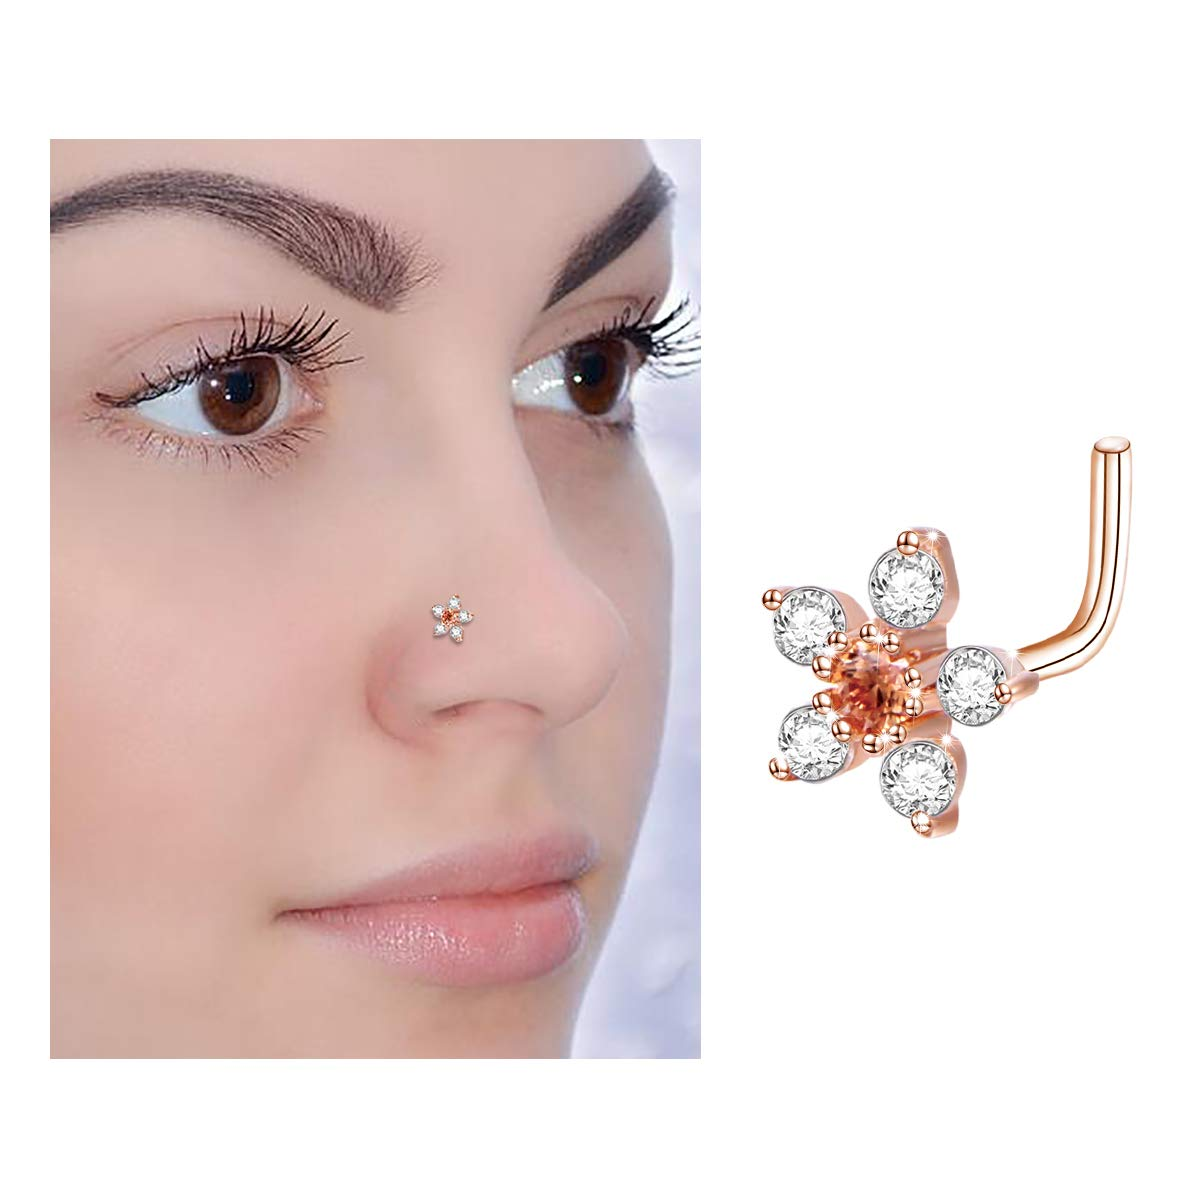 20G Sterling Silver Flower Nose Stud L Shape Ring Body Jewelry with Big Bling Two-Tone 6-CZ Flower Top Harmonyball Jewelry G9ANS1807009A3